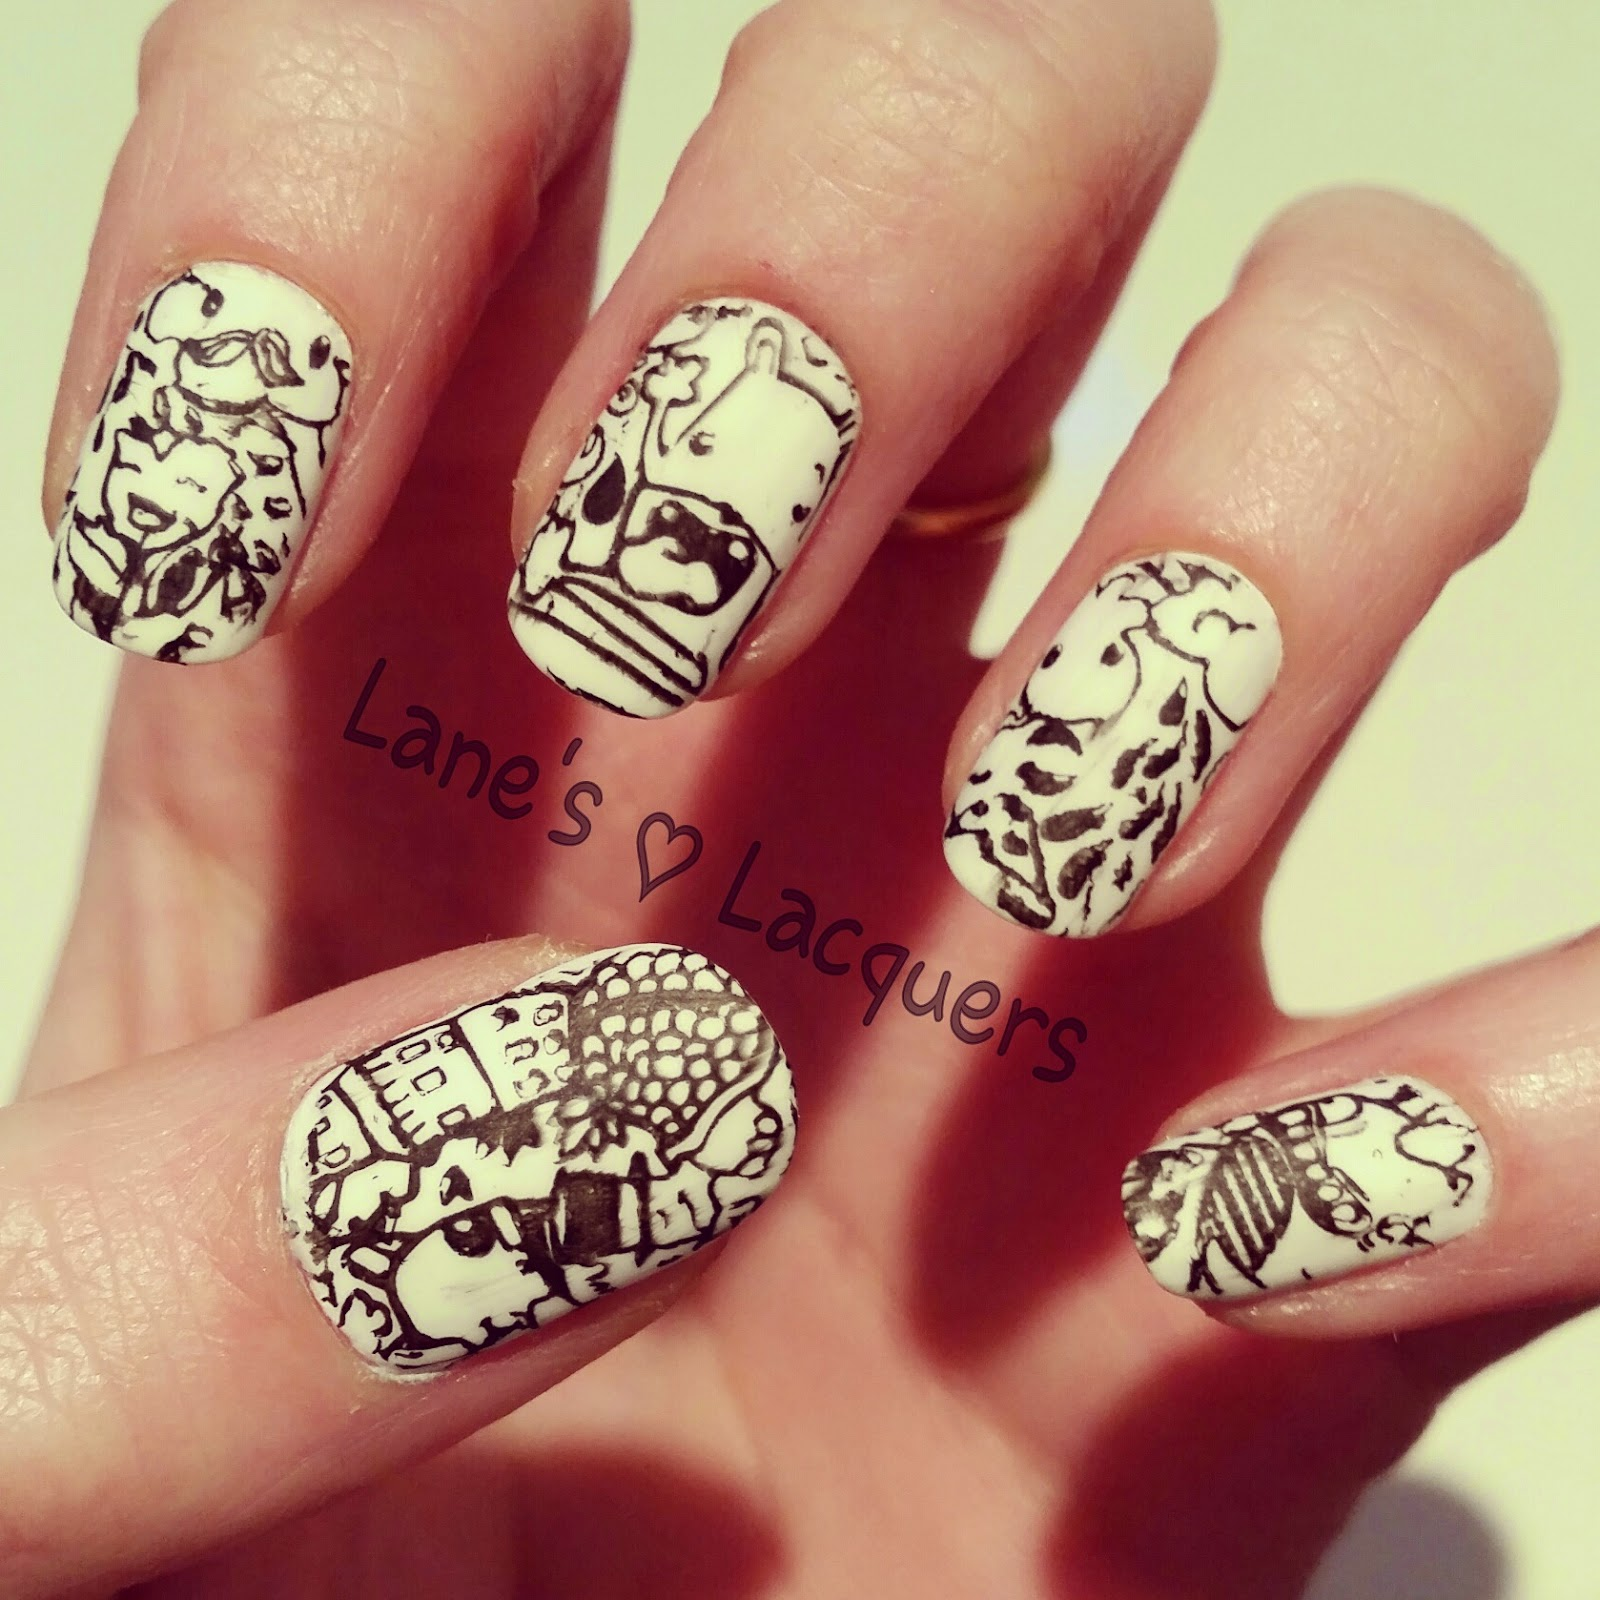 moyou-london-rebel-cartoon-illustration-matte-nail-art